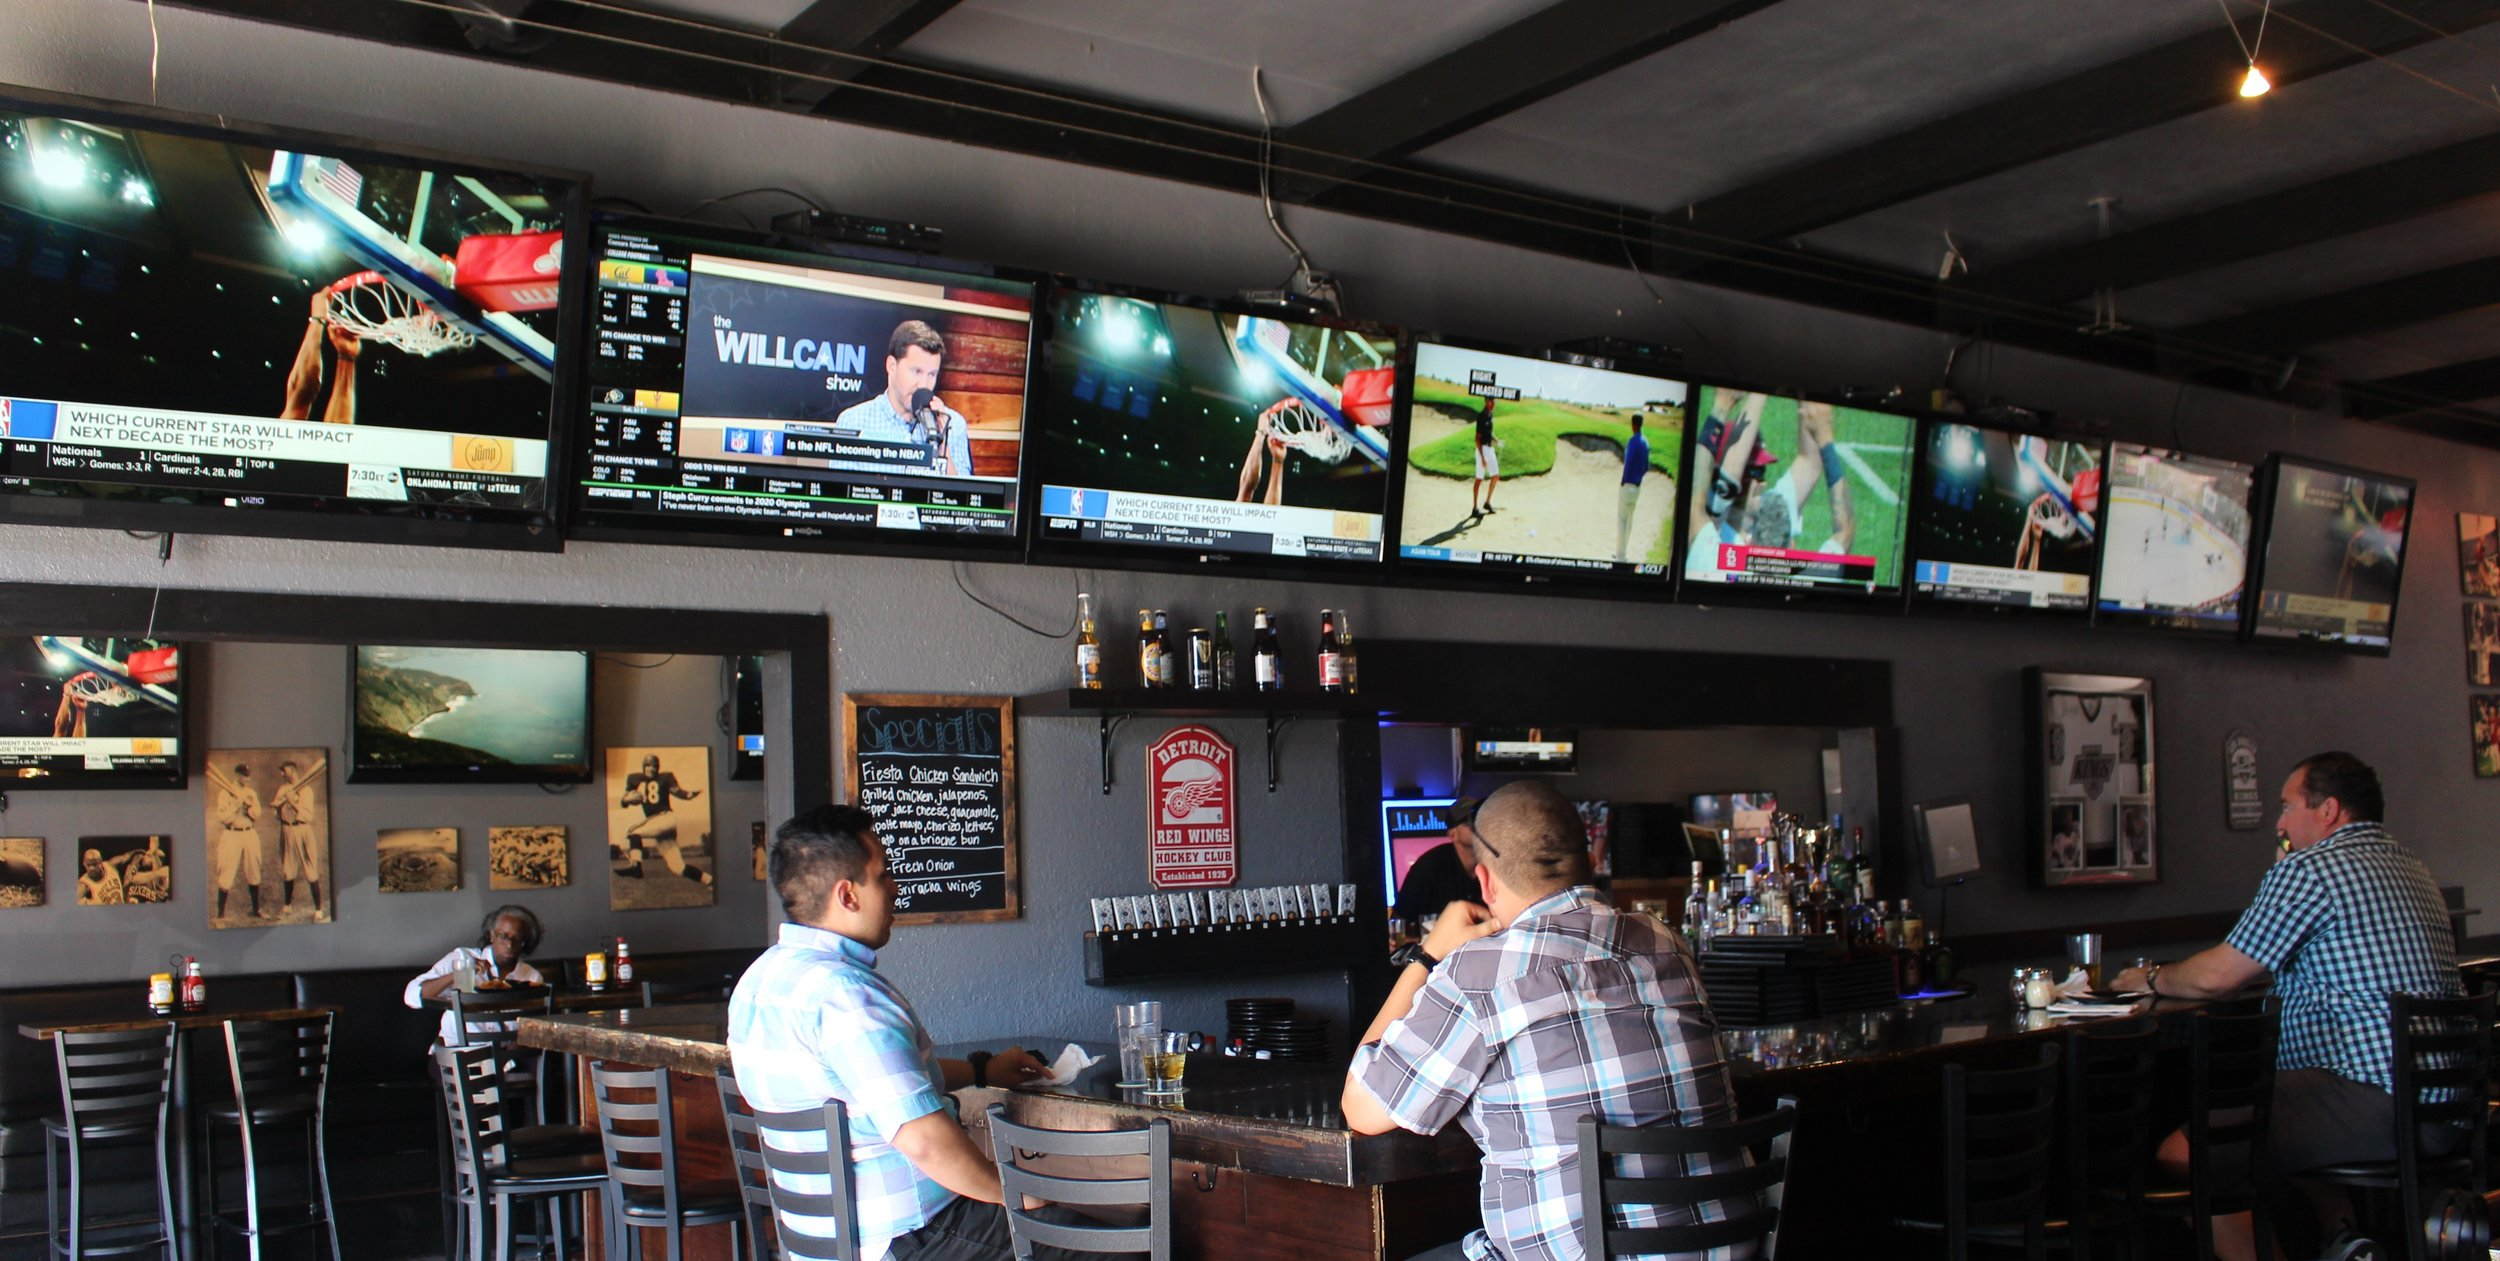 This sports bar is on the more modern and casual side.